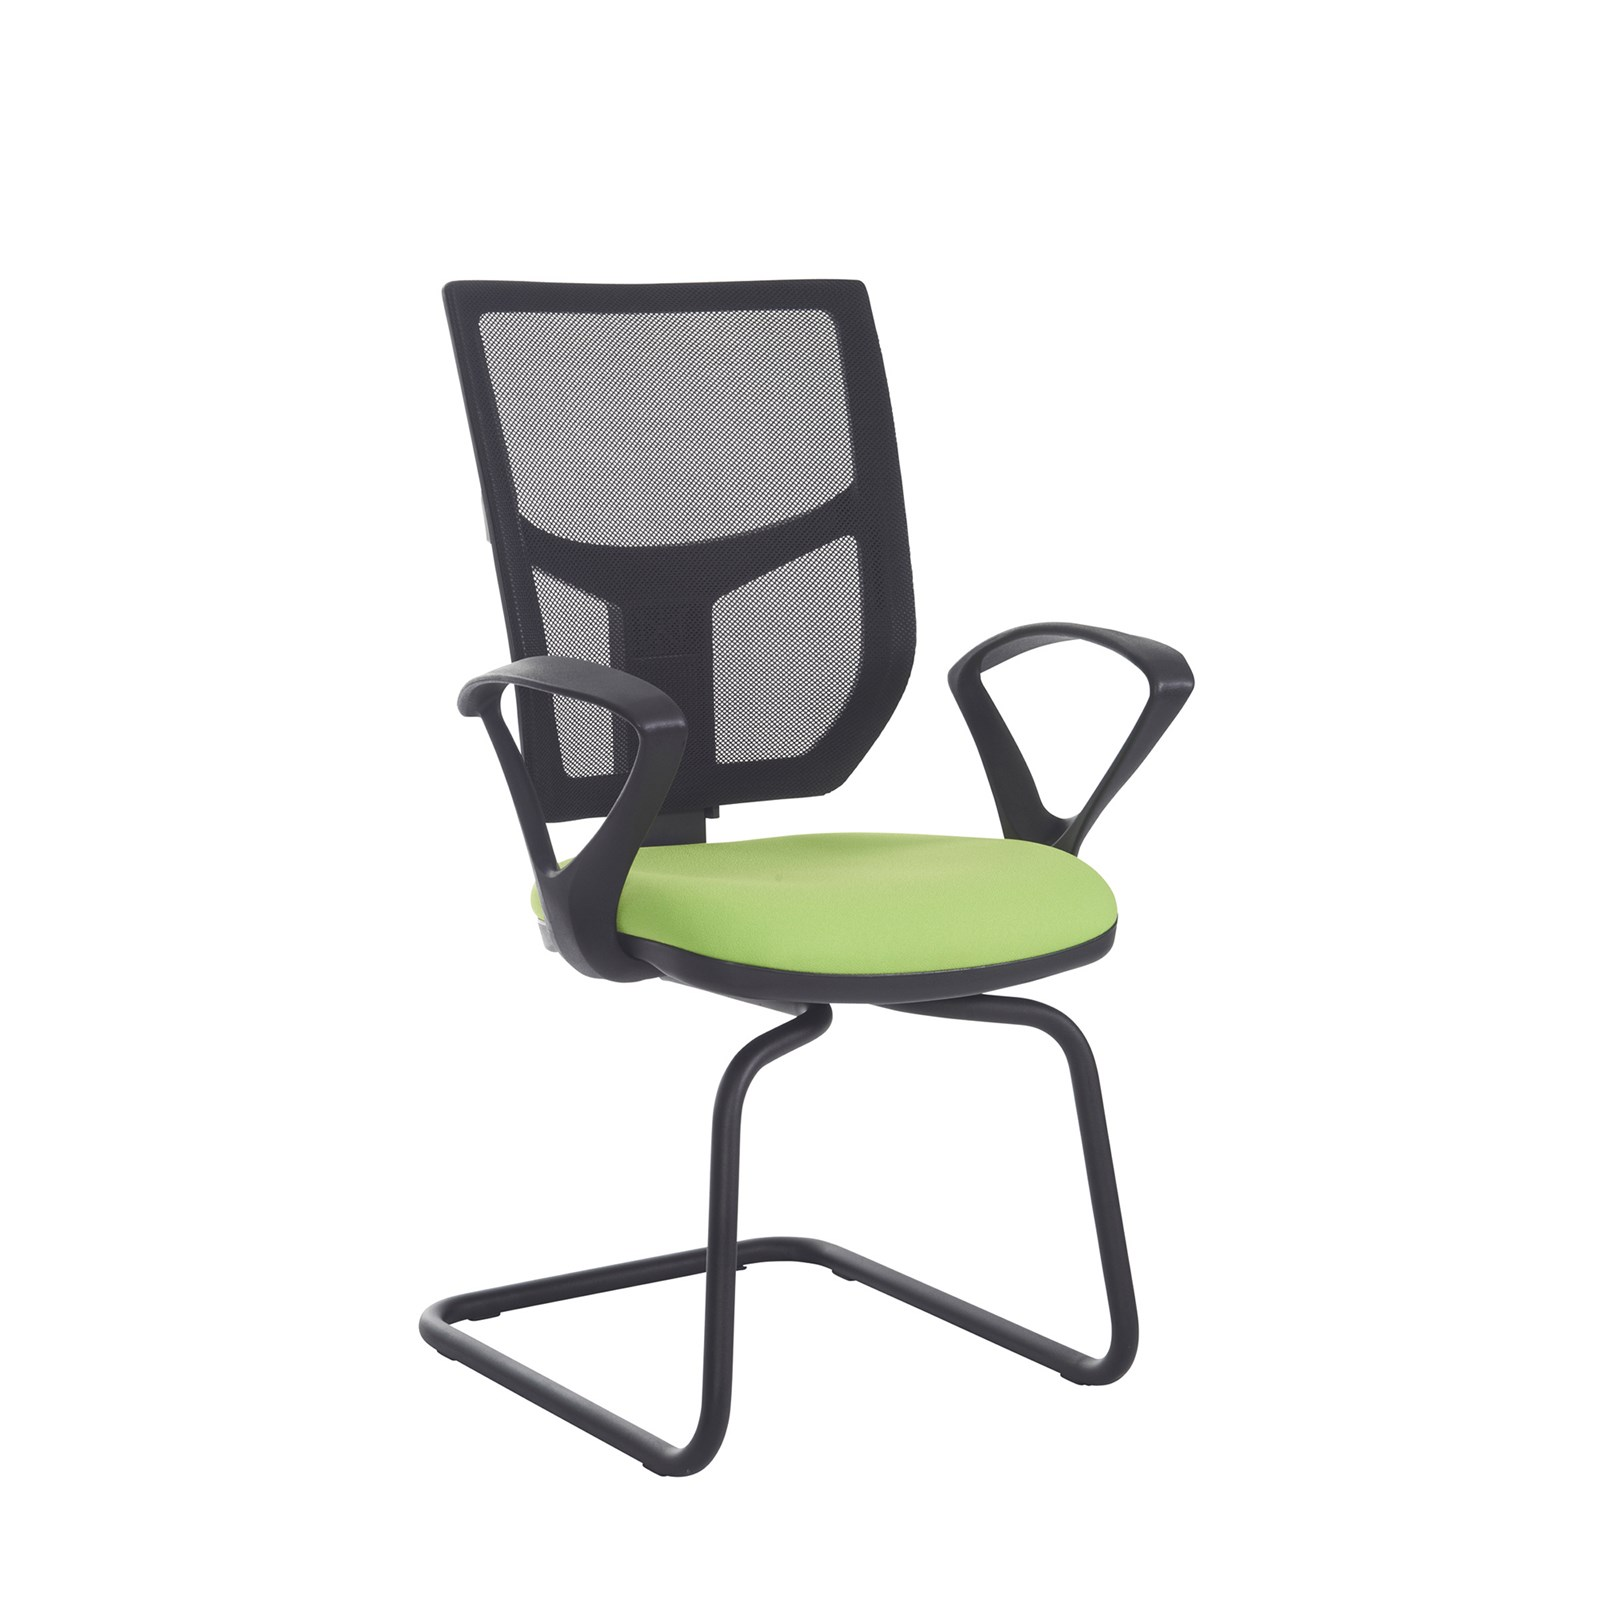 Mesh back chair fixed arms